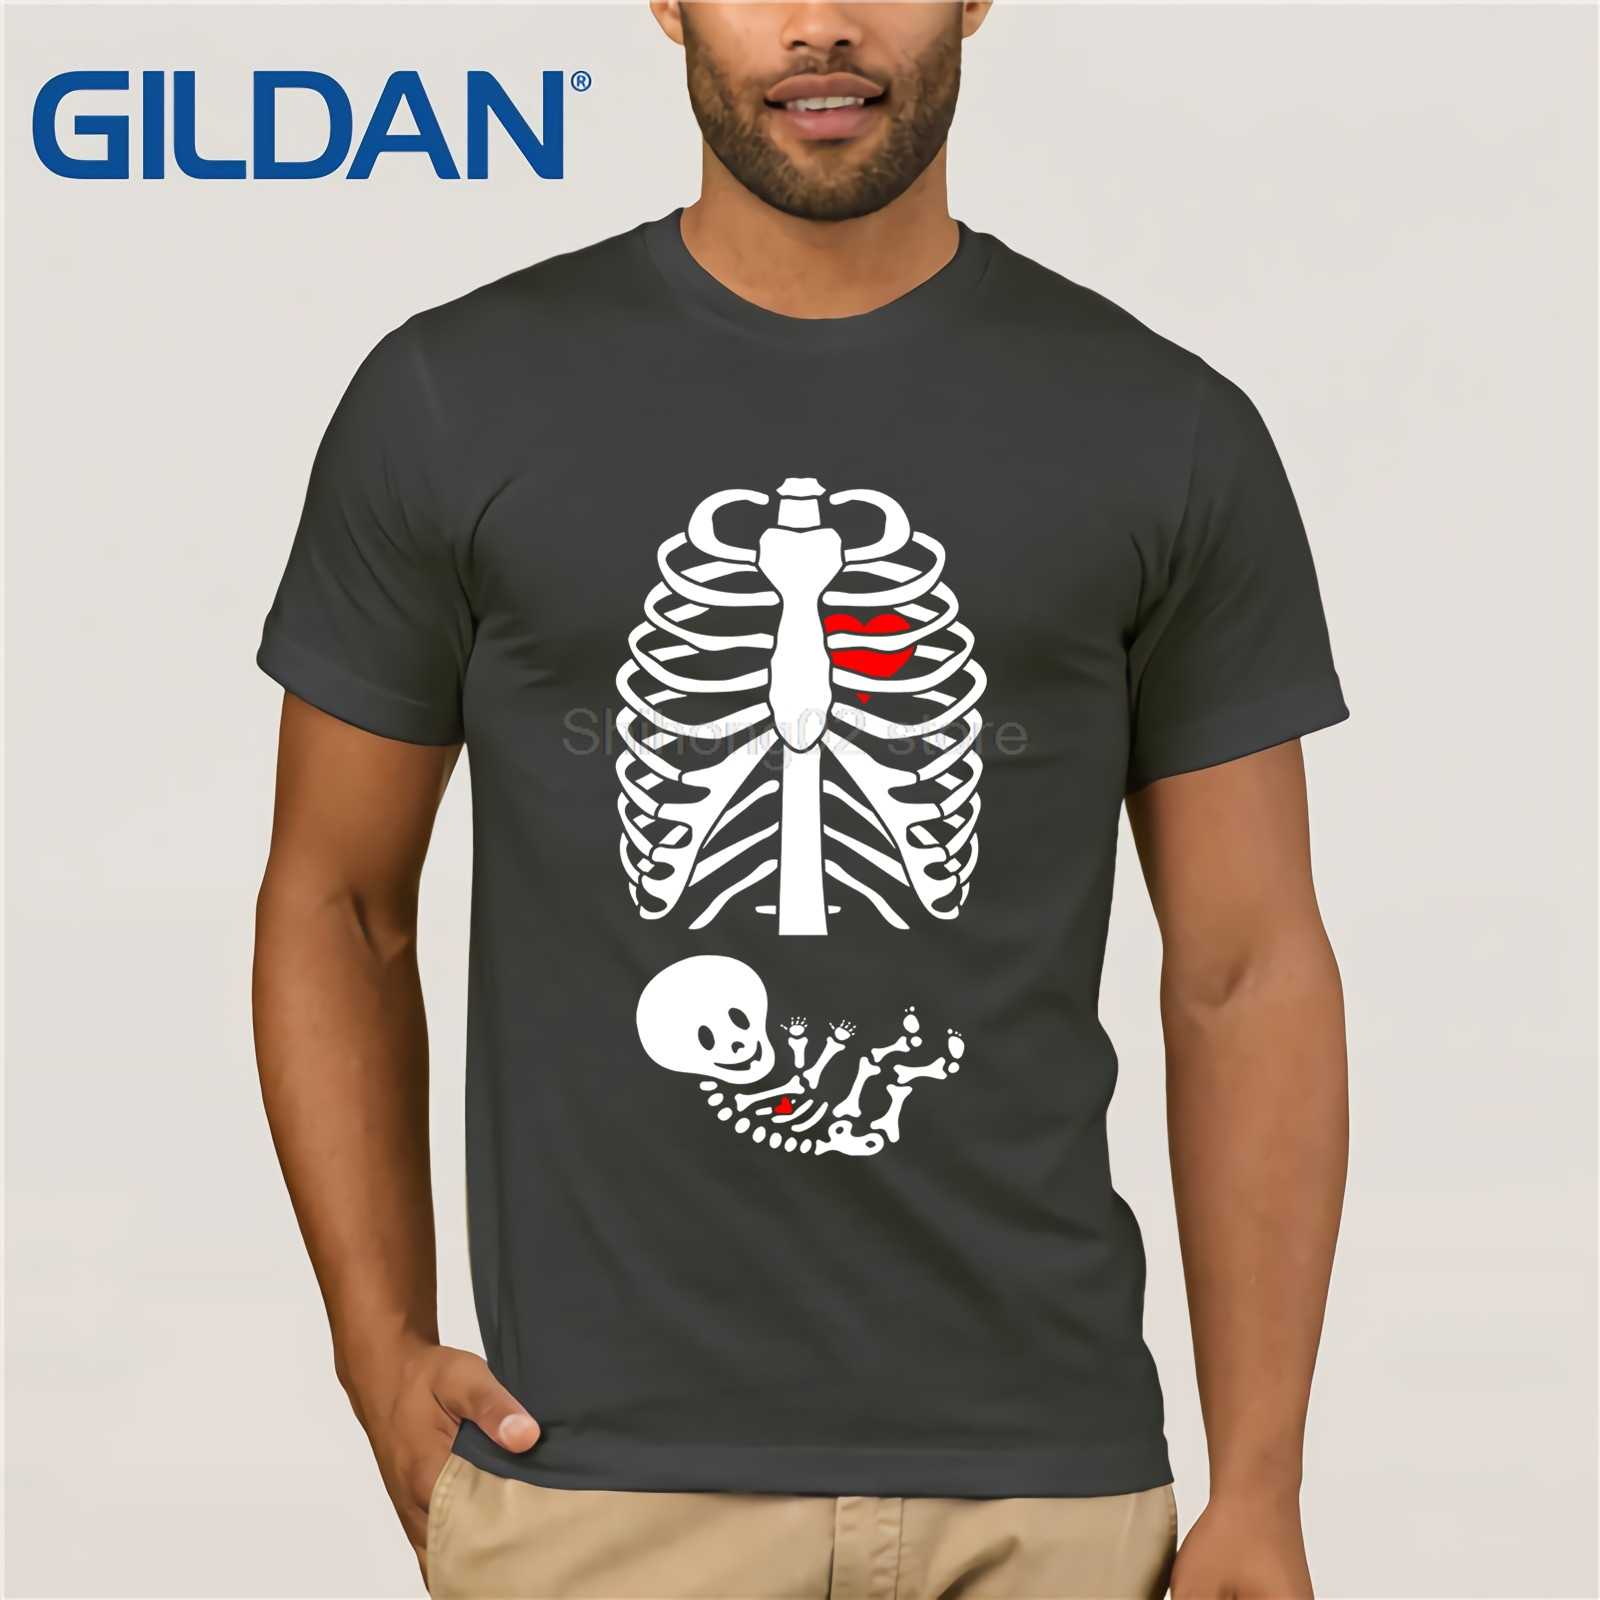 Halloween Pregnancy T Shirt.Gildan Mens Halloween Pregnancy Announcement Baby Boy Skeleton Shirt Men S T Shirt